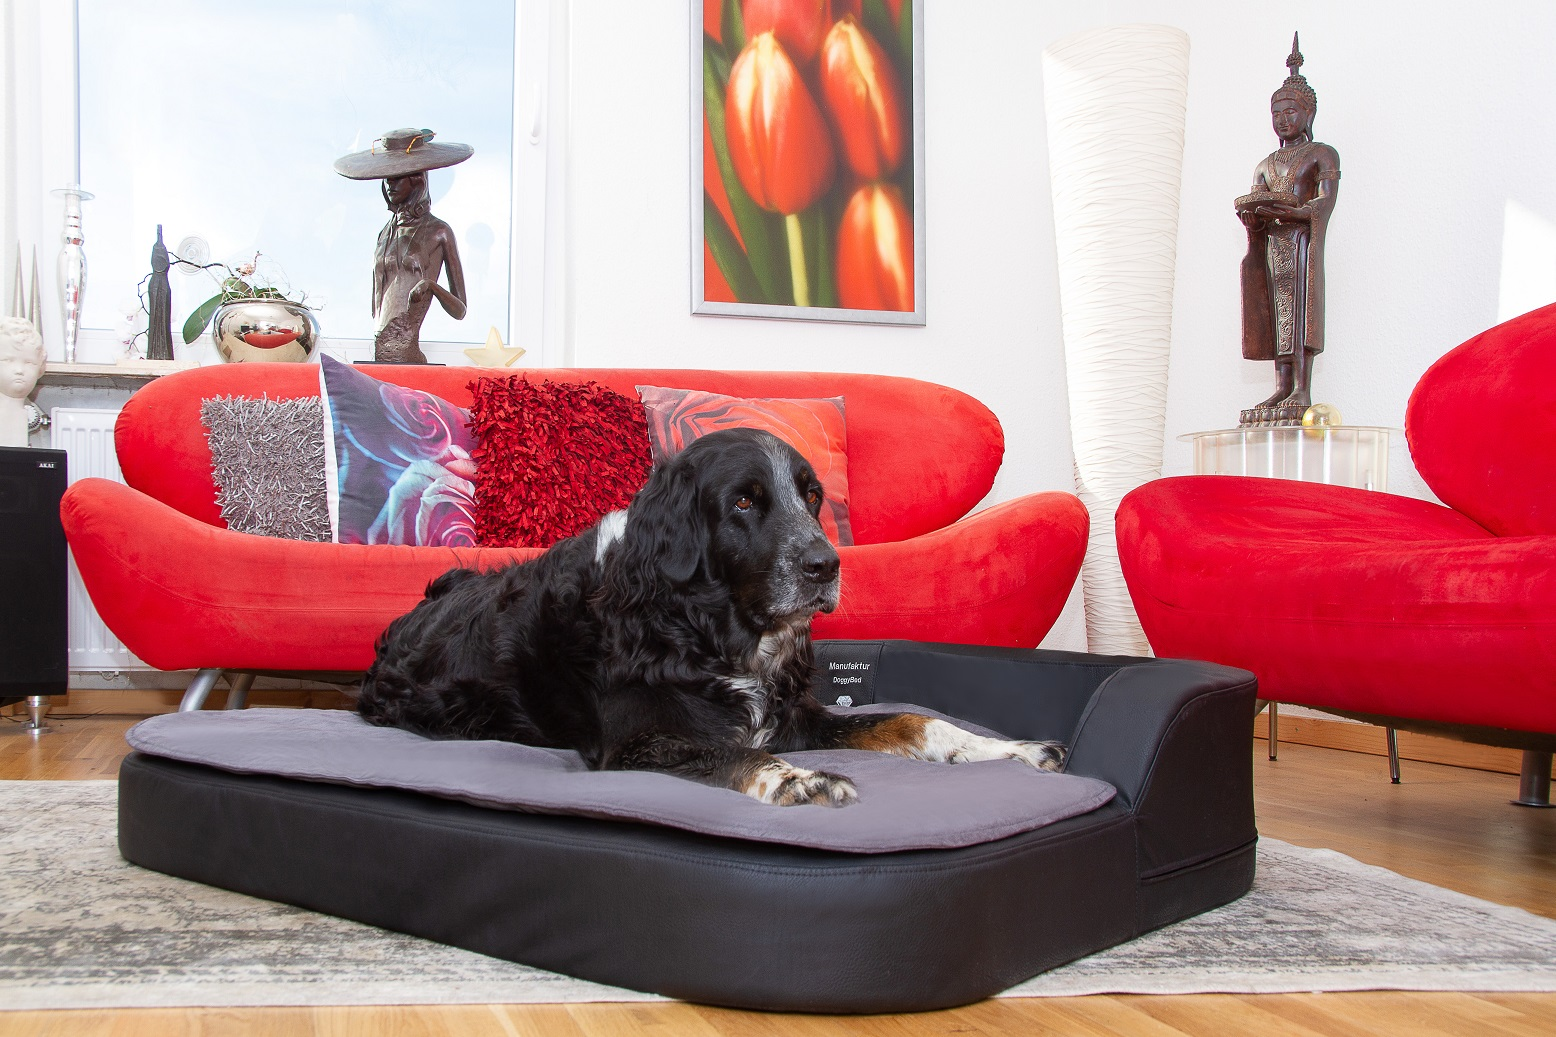 DoggyBed Hundekissen Medical Style Plus